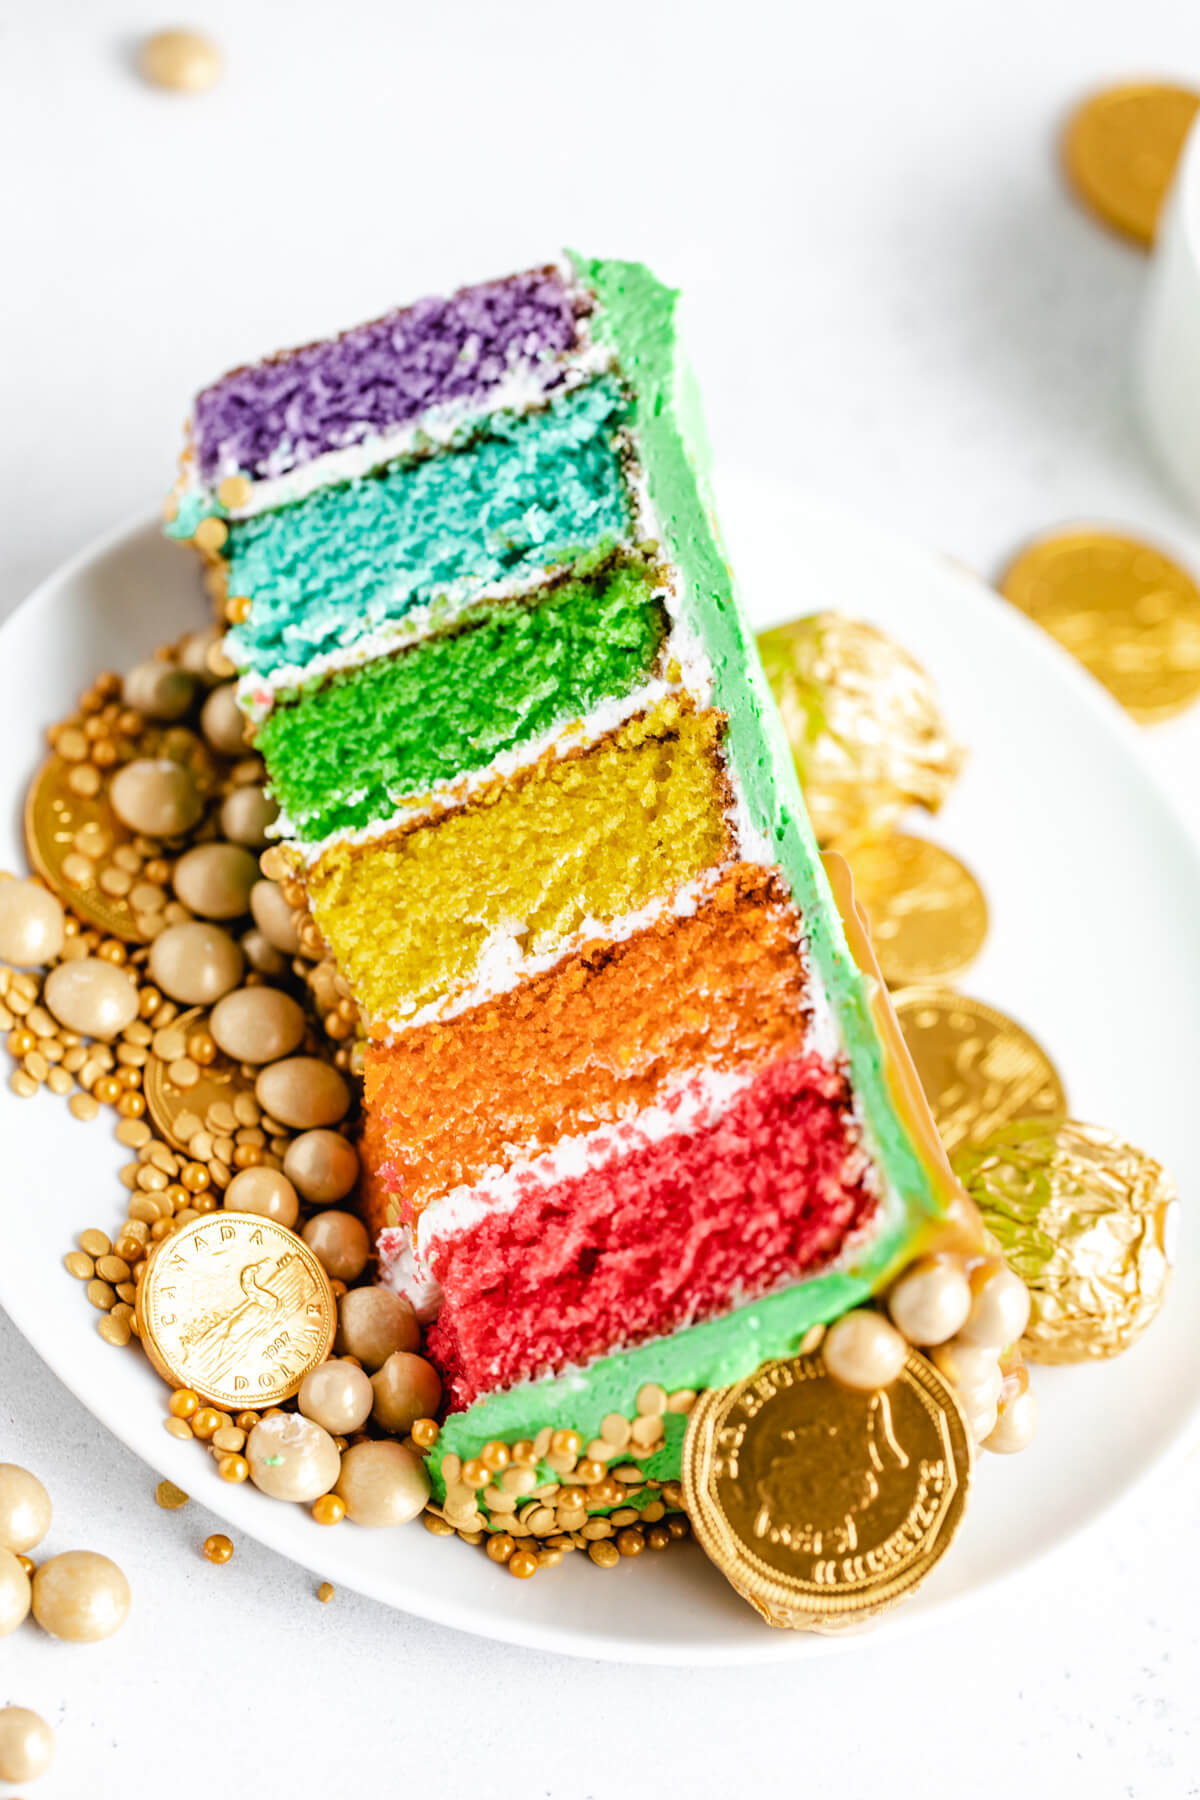 slice of rainbow cake on a white plate